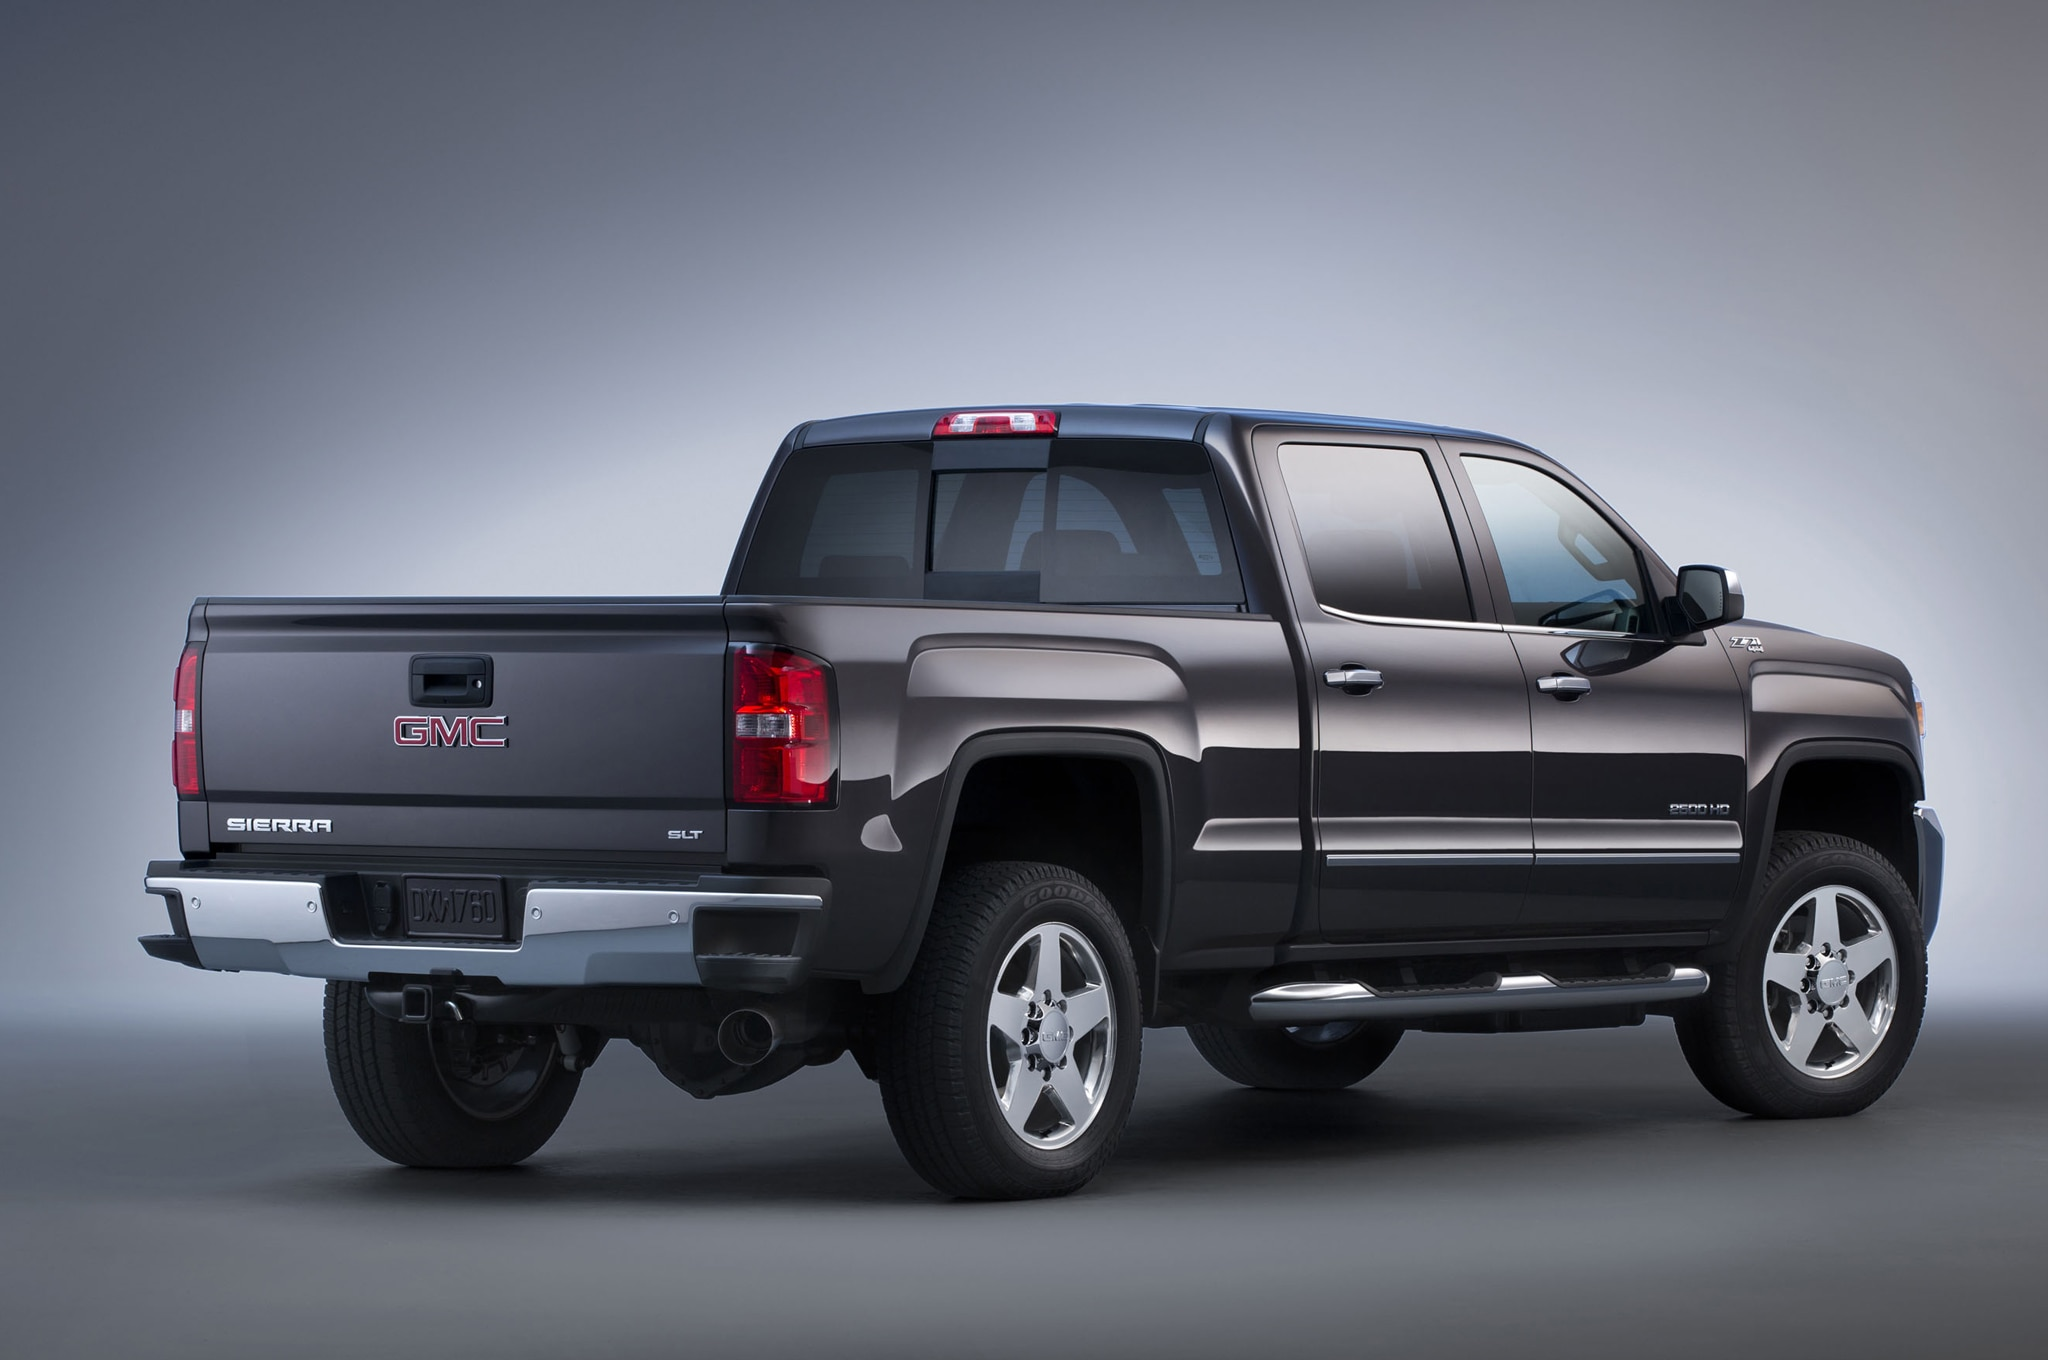 2015 GMC Sierra 2500HD rear